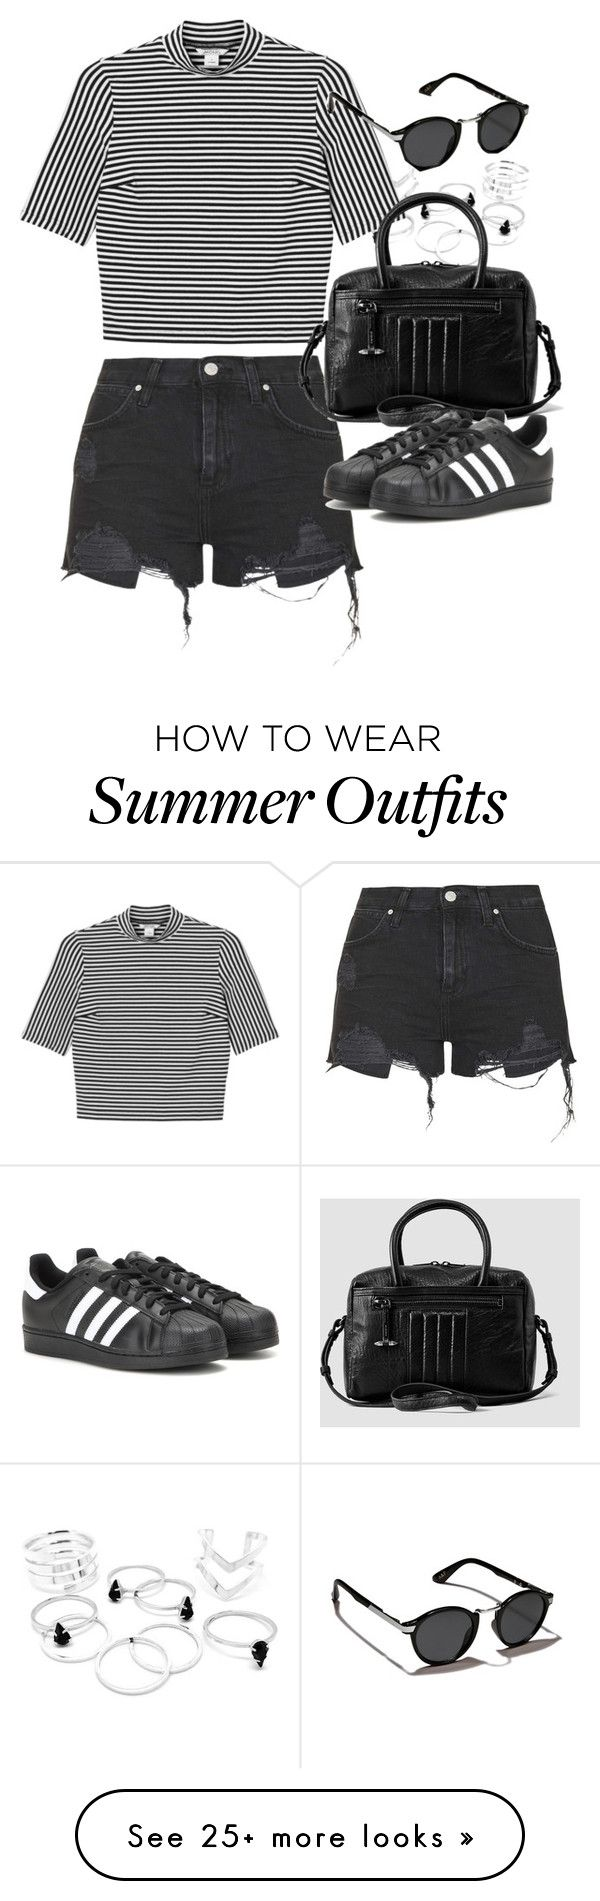 """Outfit for summer with denim shorts"" by ferned on Polyvore featuring Monki, Topshop, AllSaints, Abercrombie & Fitch and adidas"